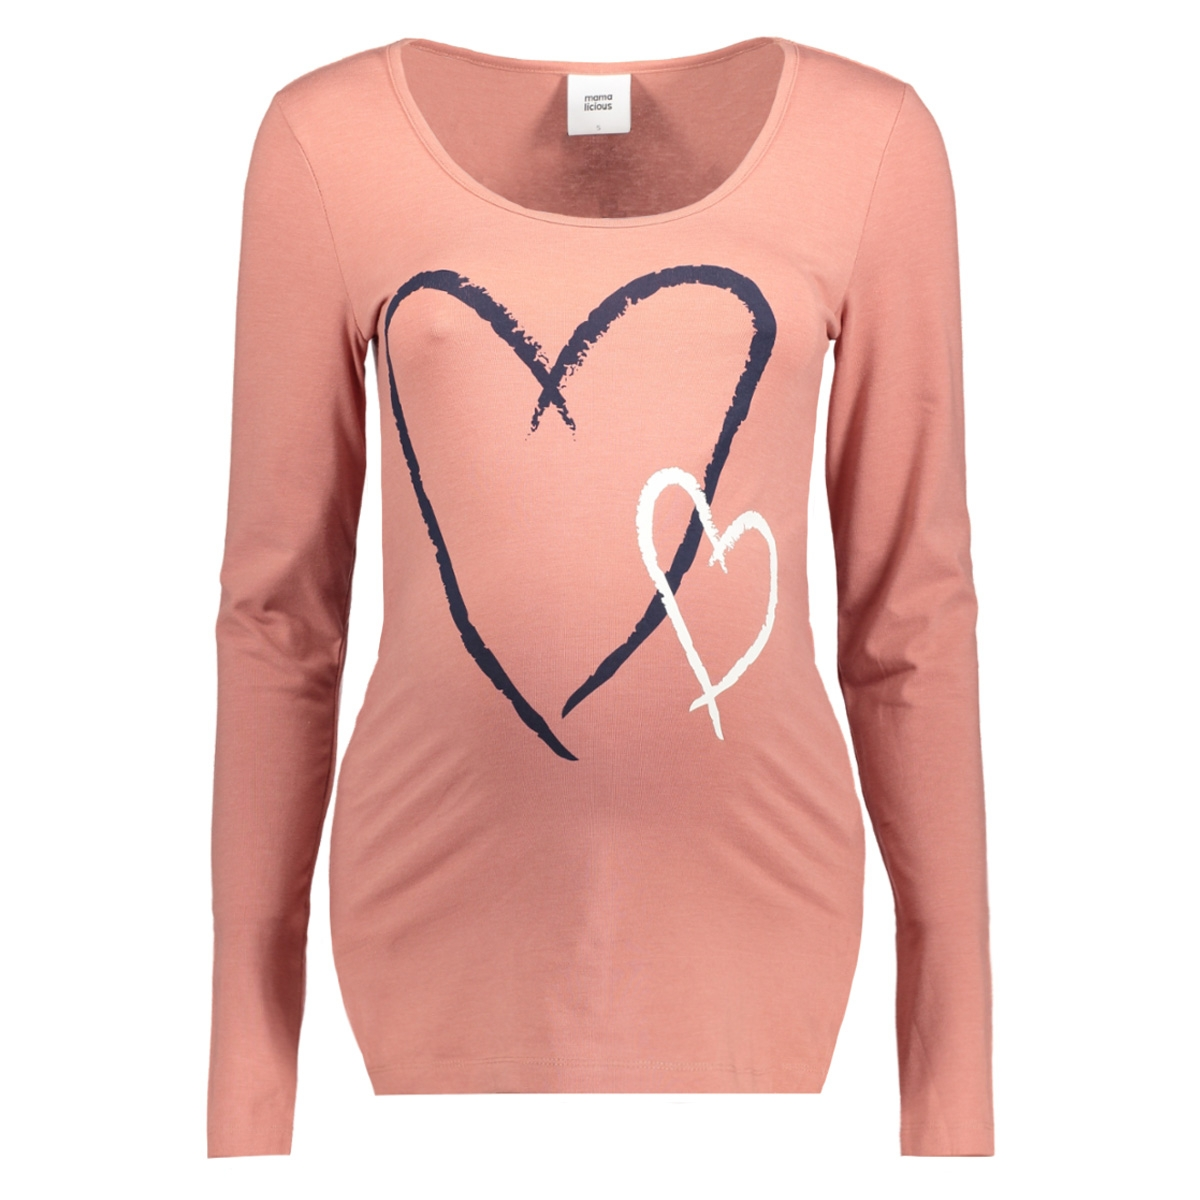 mlheartie l/s jersey top a 20008141 mama-licious positie shirt old rose/melange an